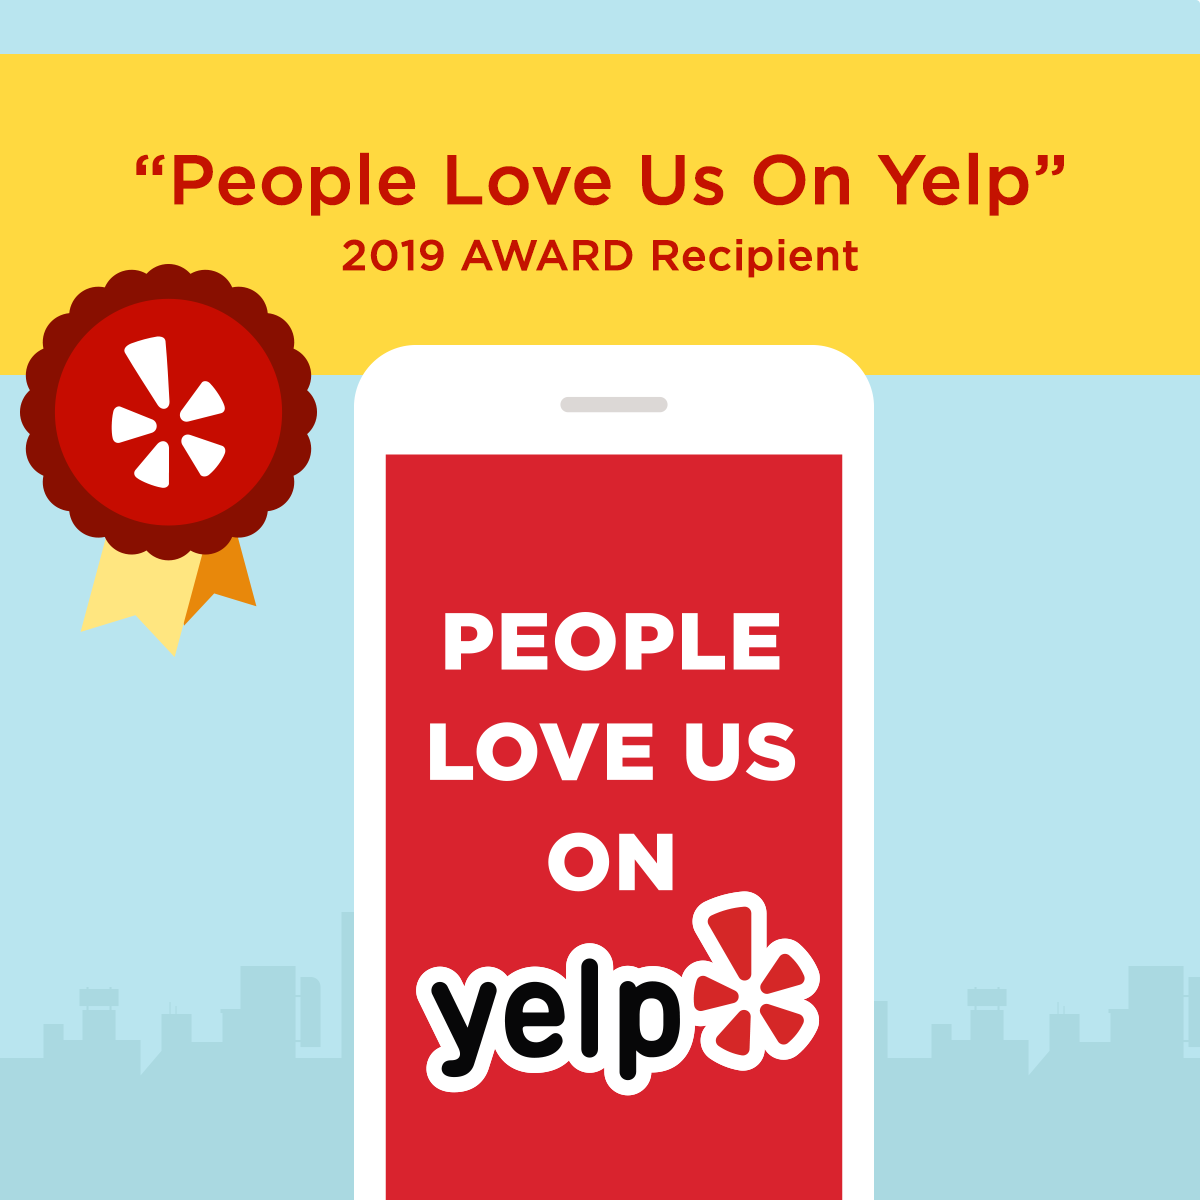 People Love Us On Yelp Award 2019